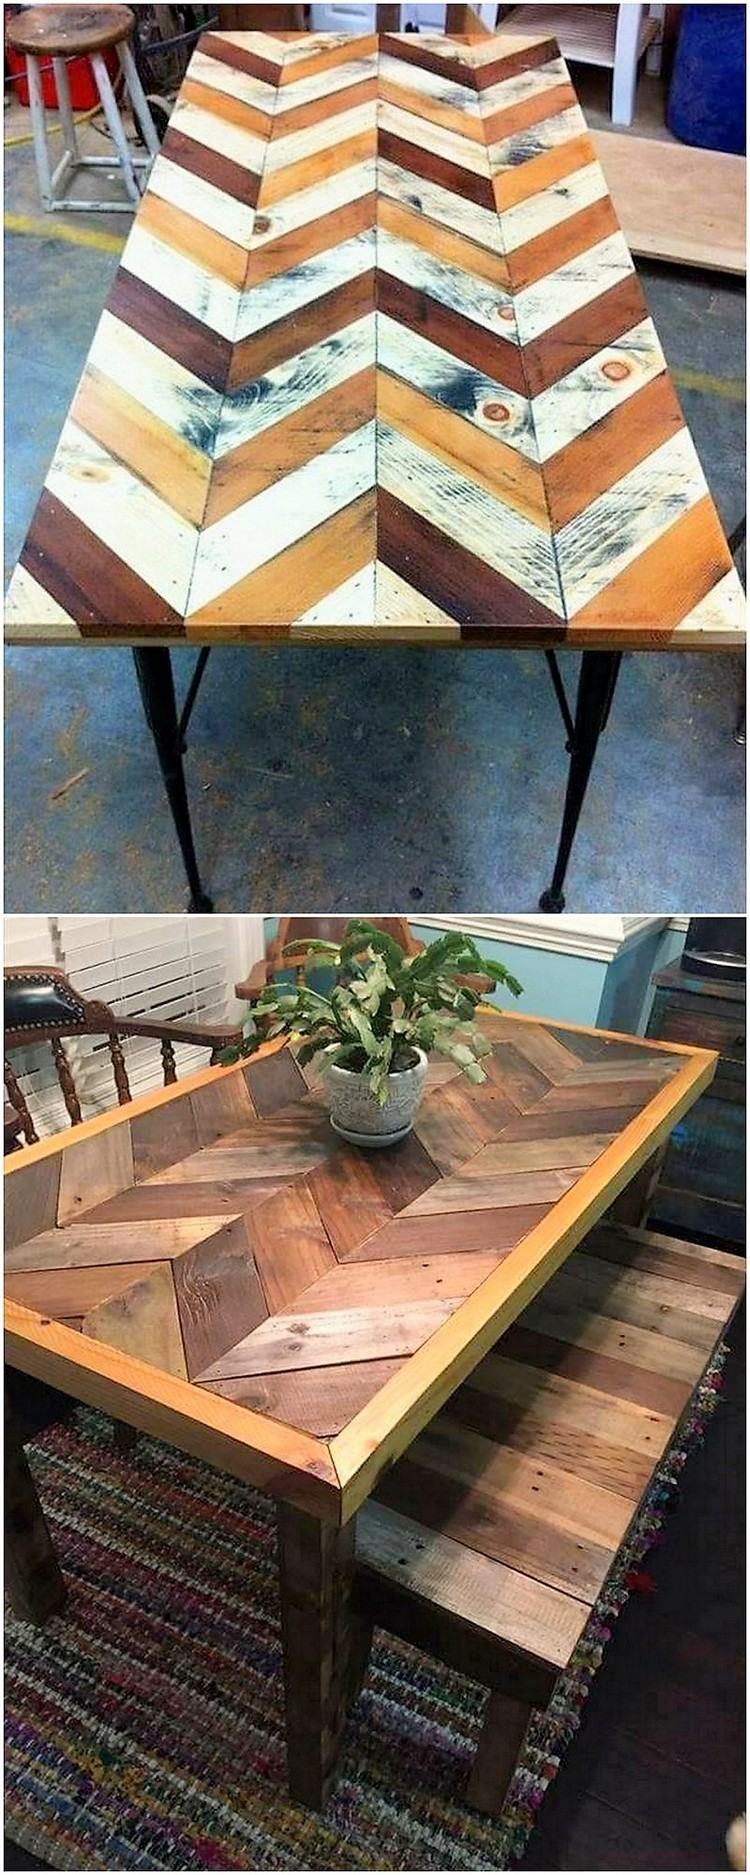 Pallet Breakfast Table and Bench